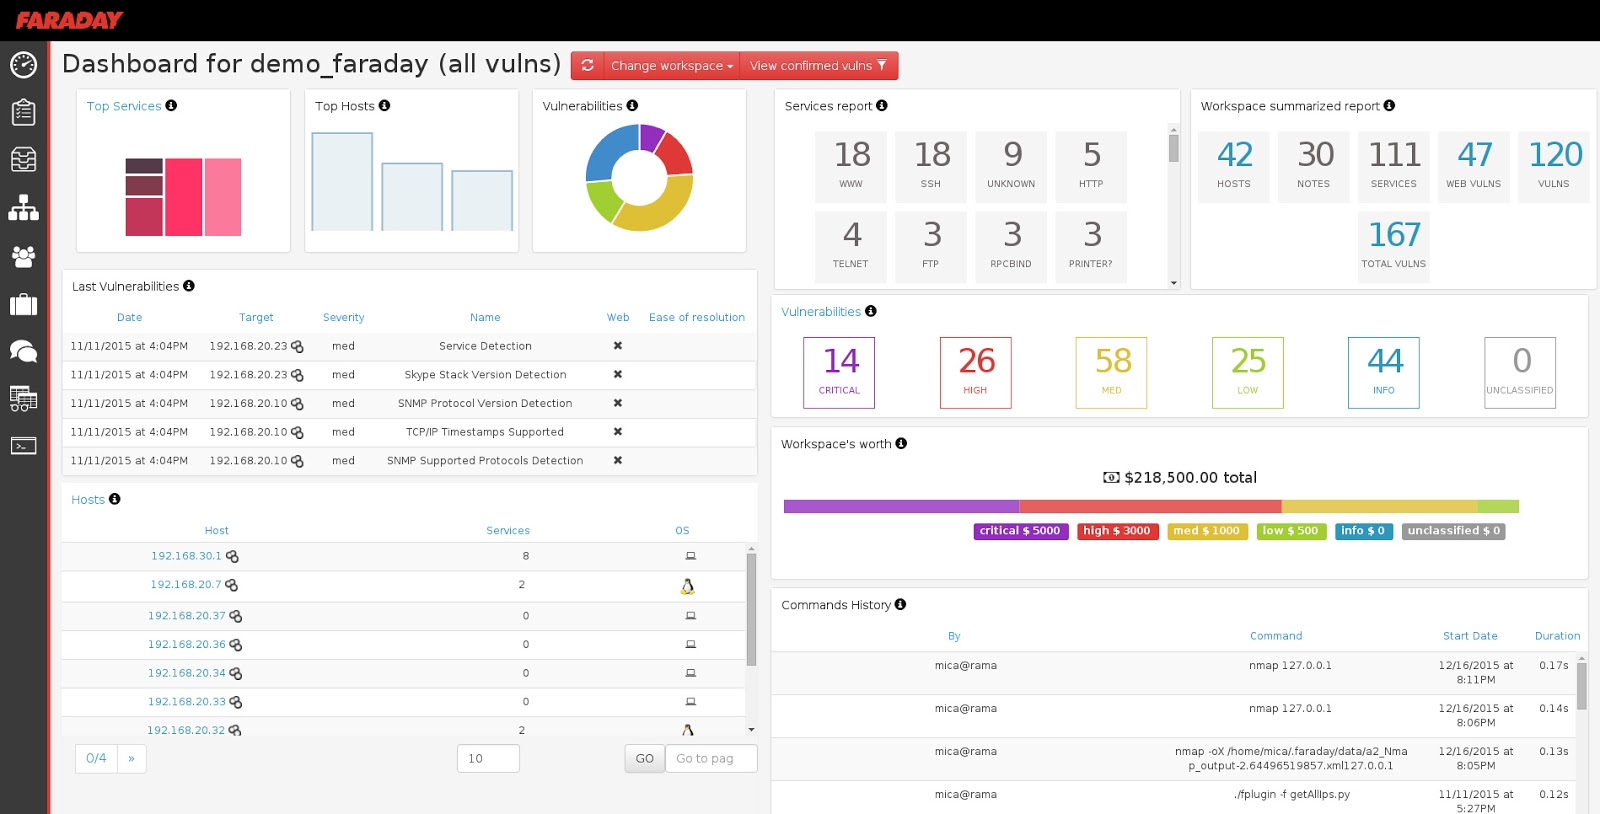 Faraday Dashboard Screenshot